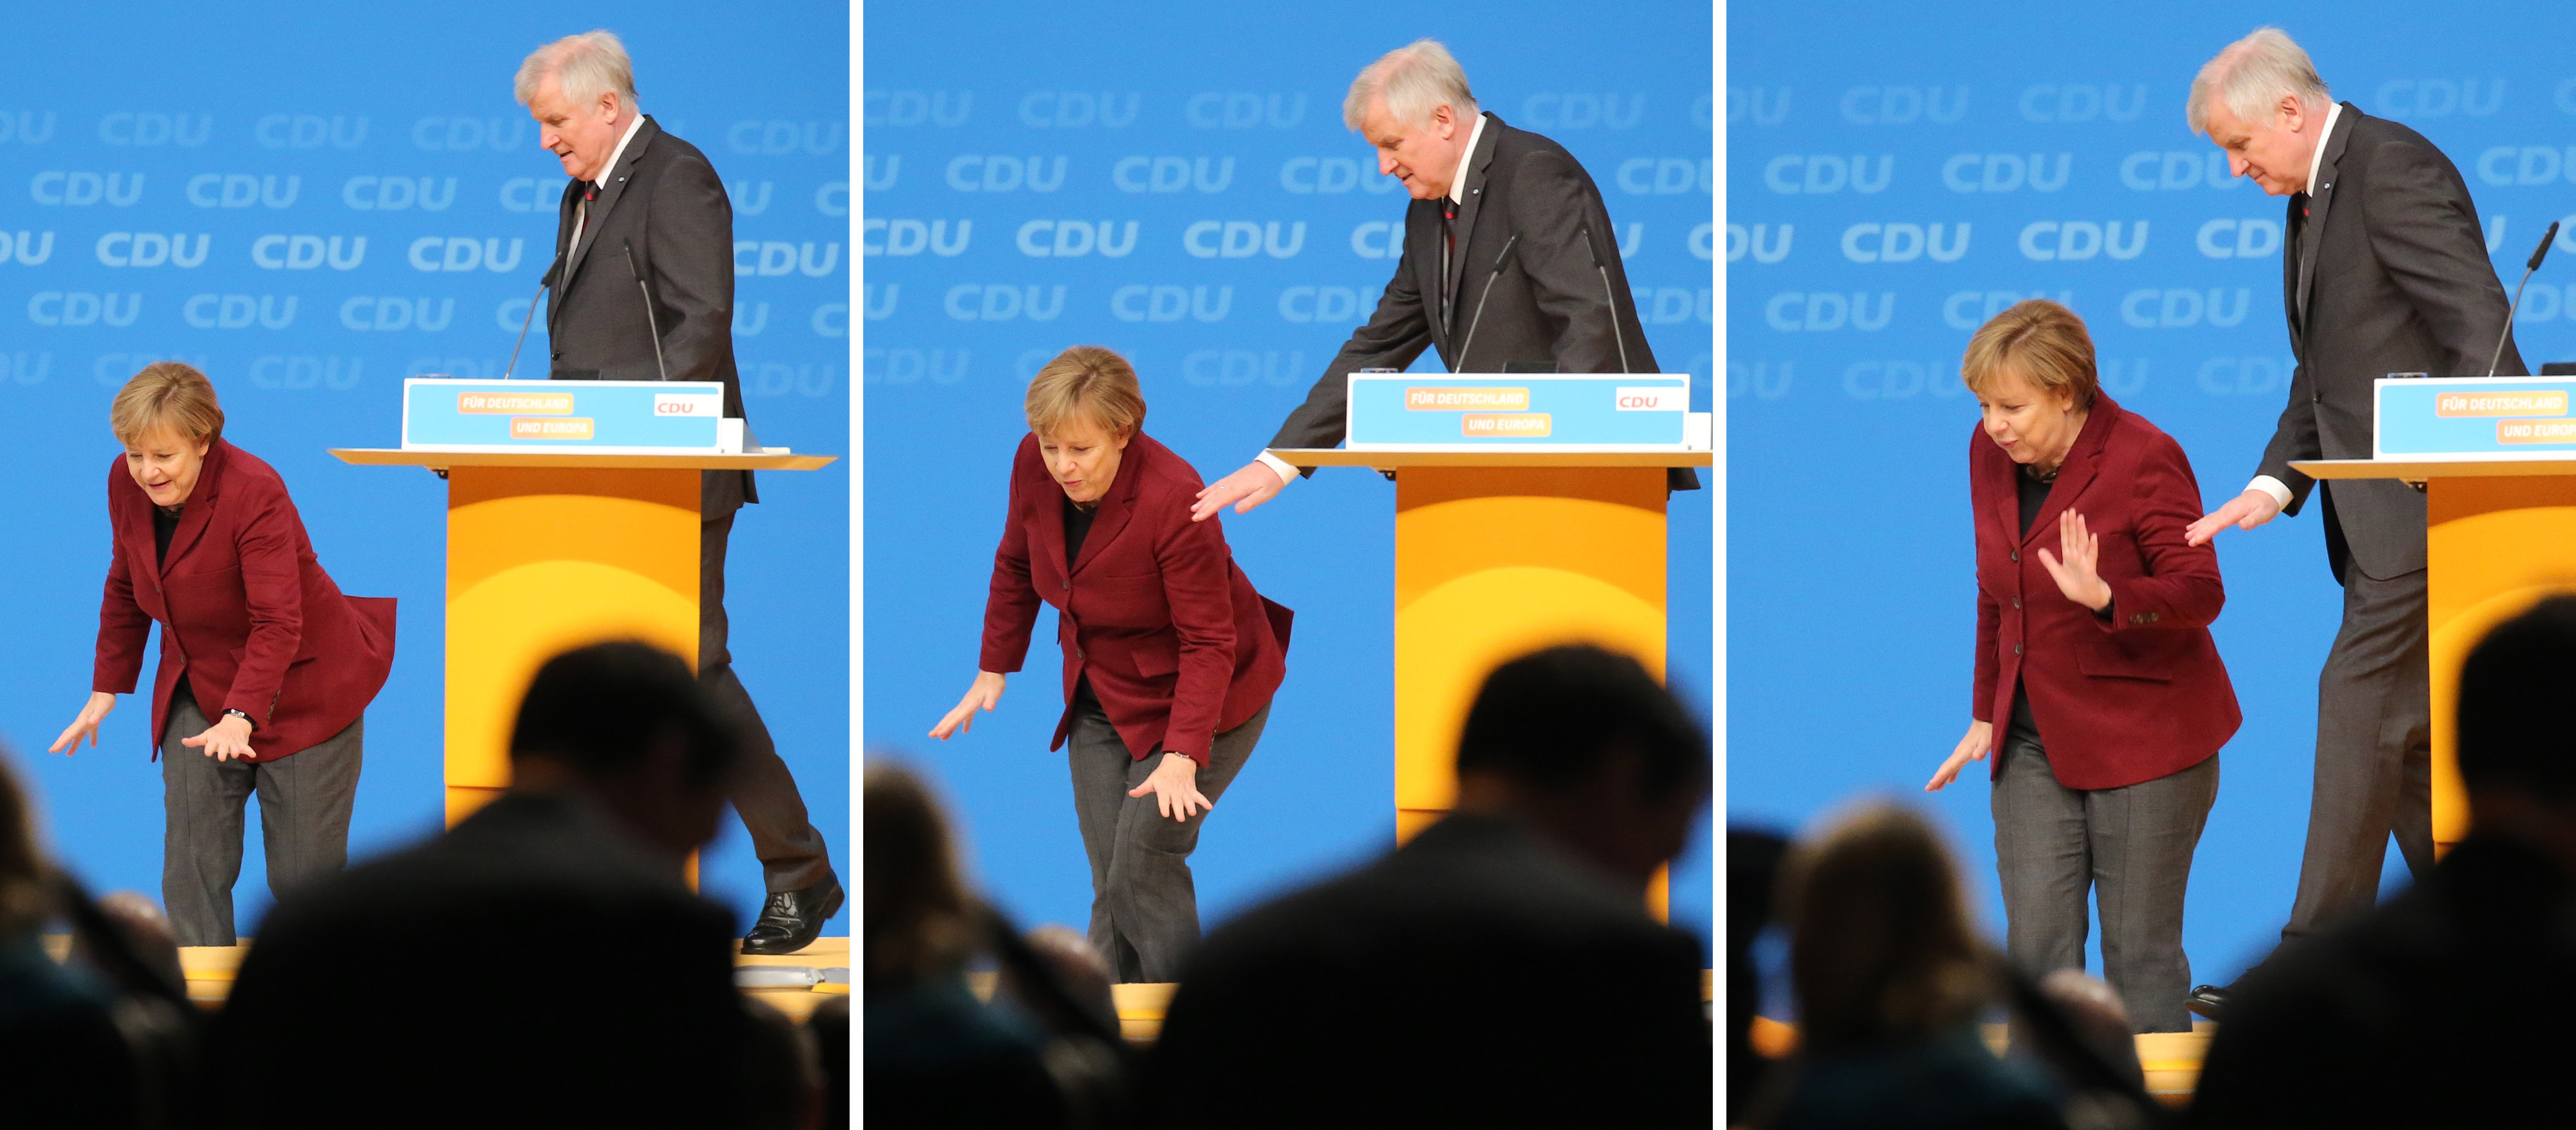 Combo shows German Chancellor and Christian Democratic Union (CDU) leader Angela Merkel stumbling on the stage as Bavarian State Premier and Christian Social Union (CSU) leader Horst Seehofer looks on during the Christian Democratic Union's (CDU) party in Karlsruhe, southern Germany, on December 15, 2015